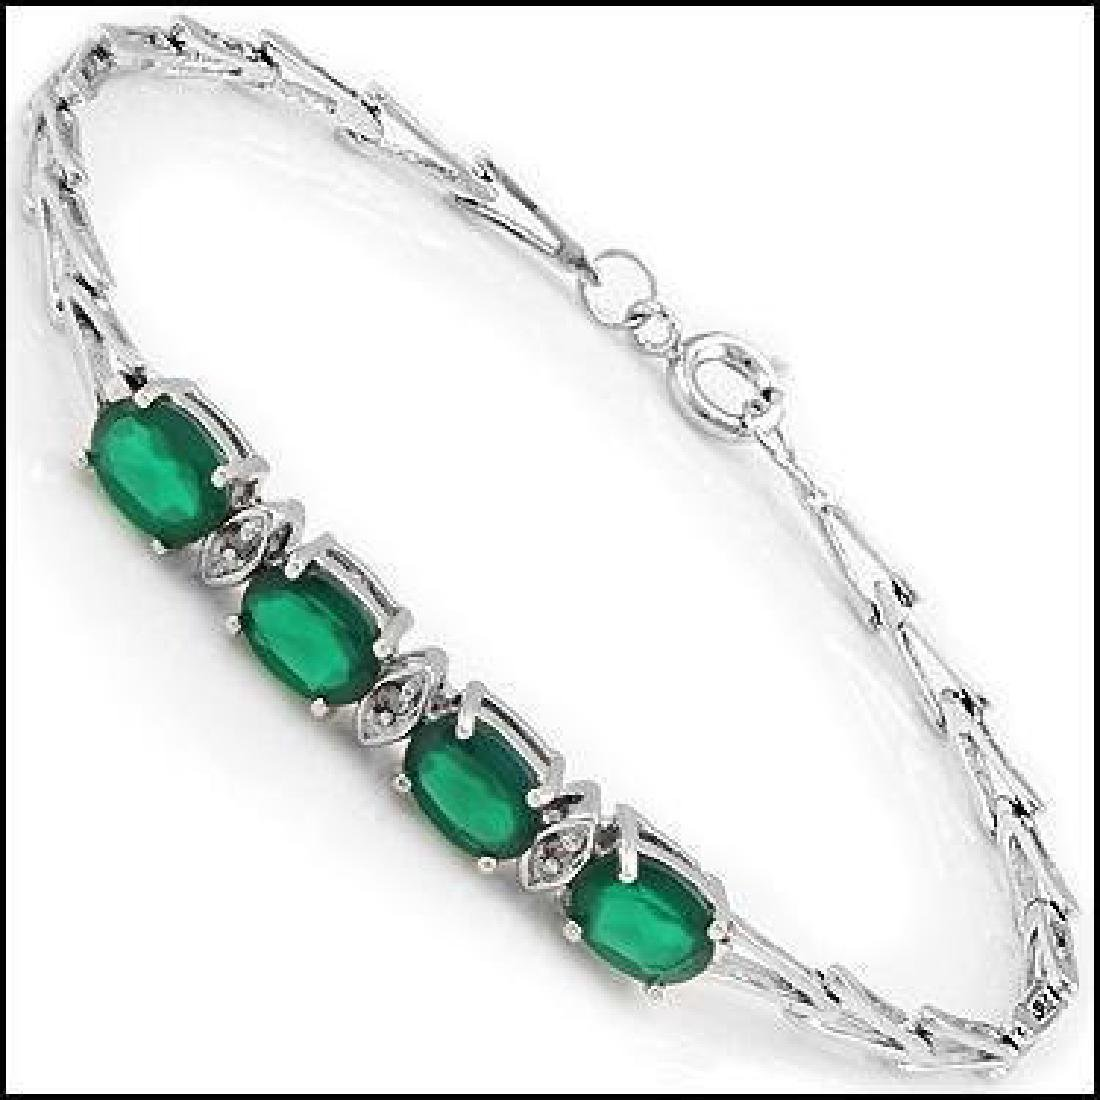 4.39 Ct Green Agate & Diamond Designer Bracelet